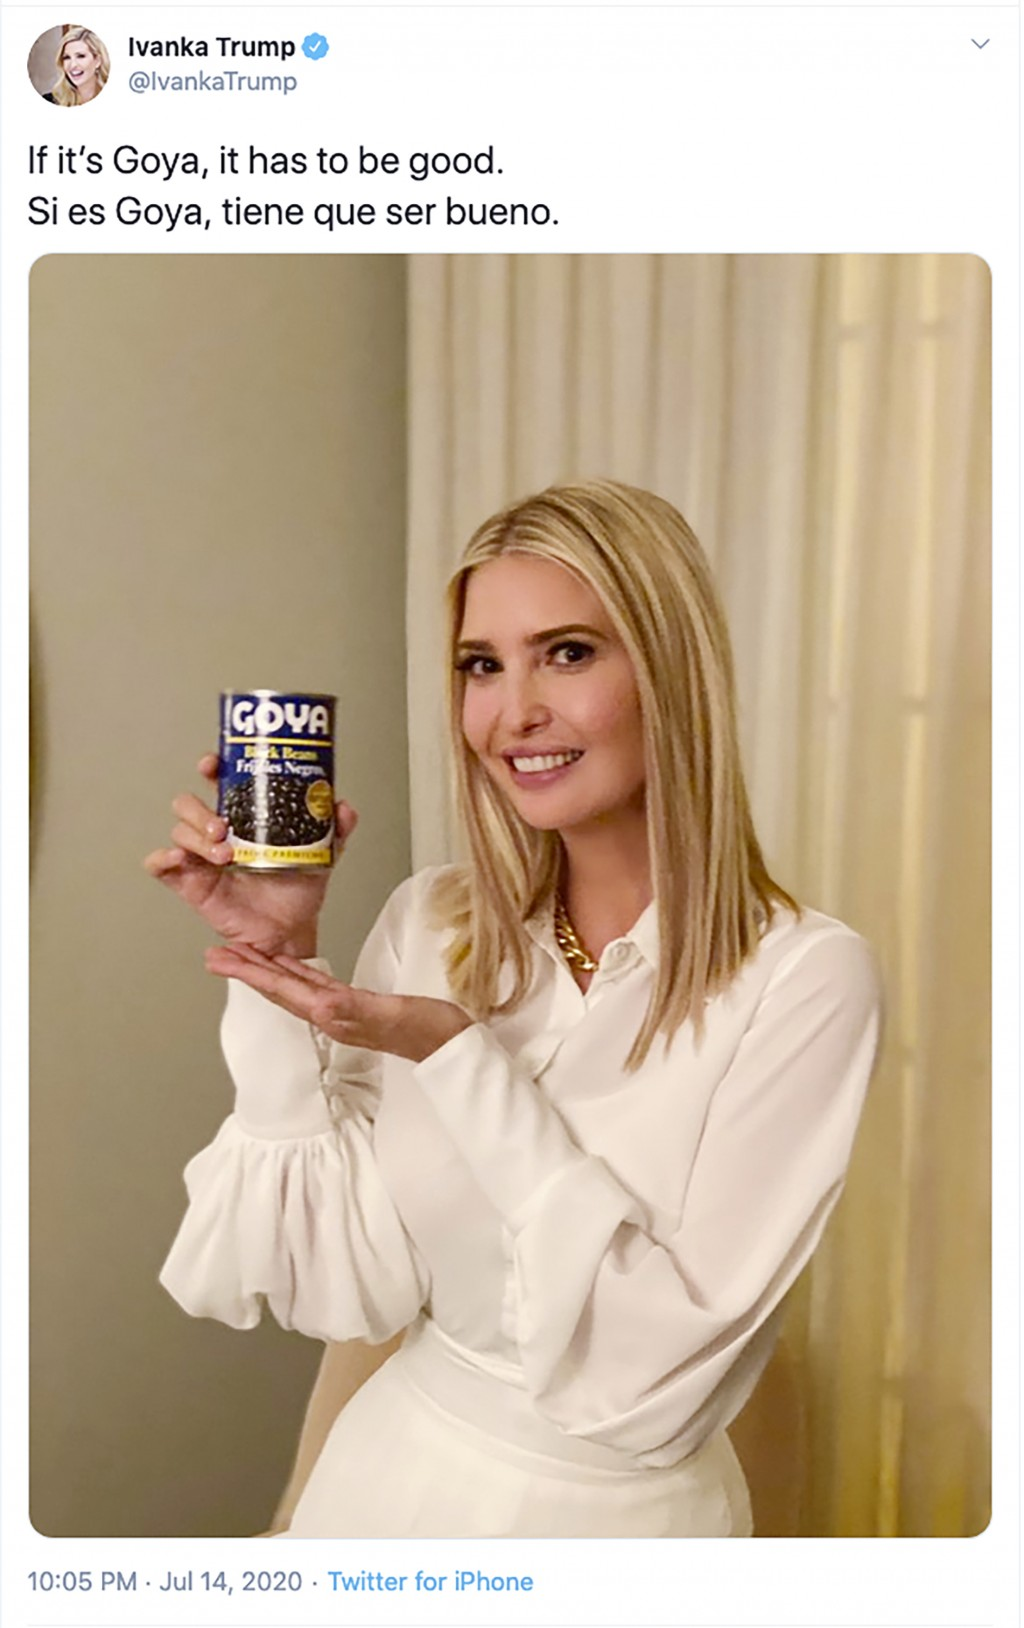 "This image taken from Ivanka Trump's Twitter account shows her holding a can of Goya beans along with the words ""If it's Goya, it has to be good"" writ..."